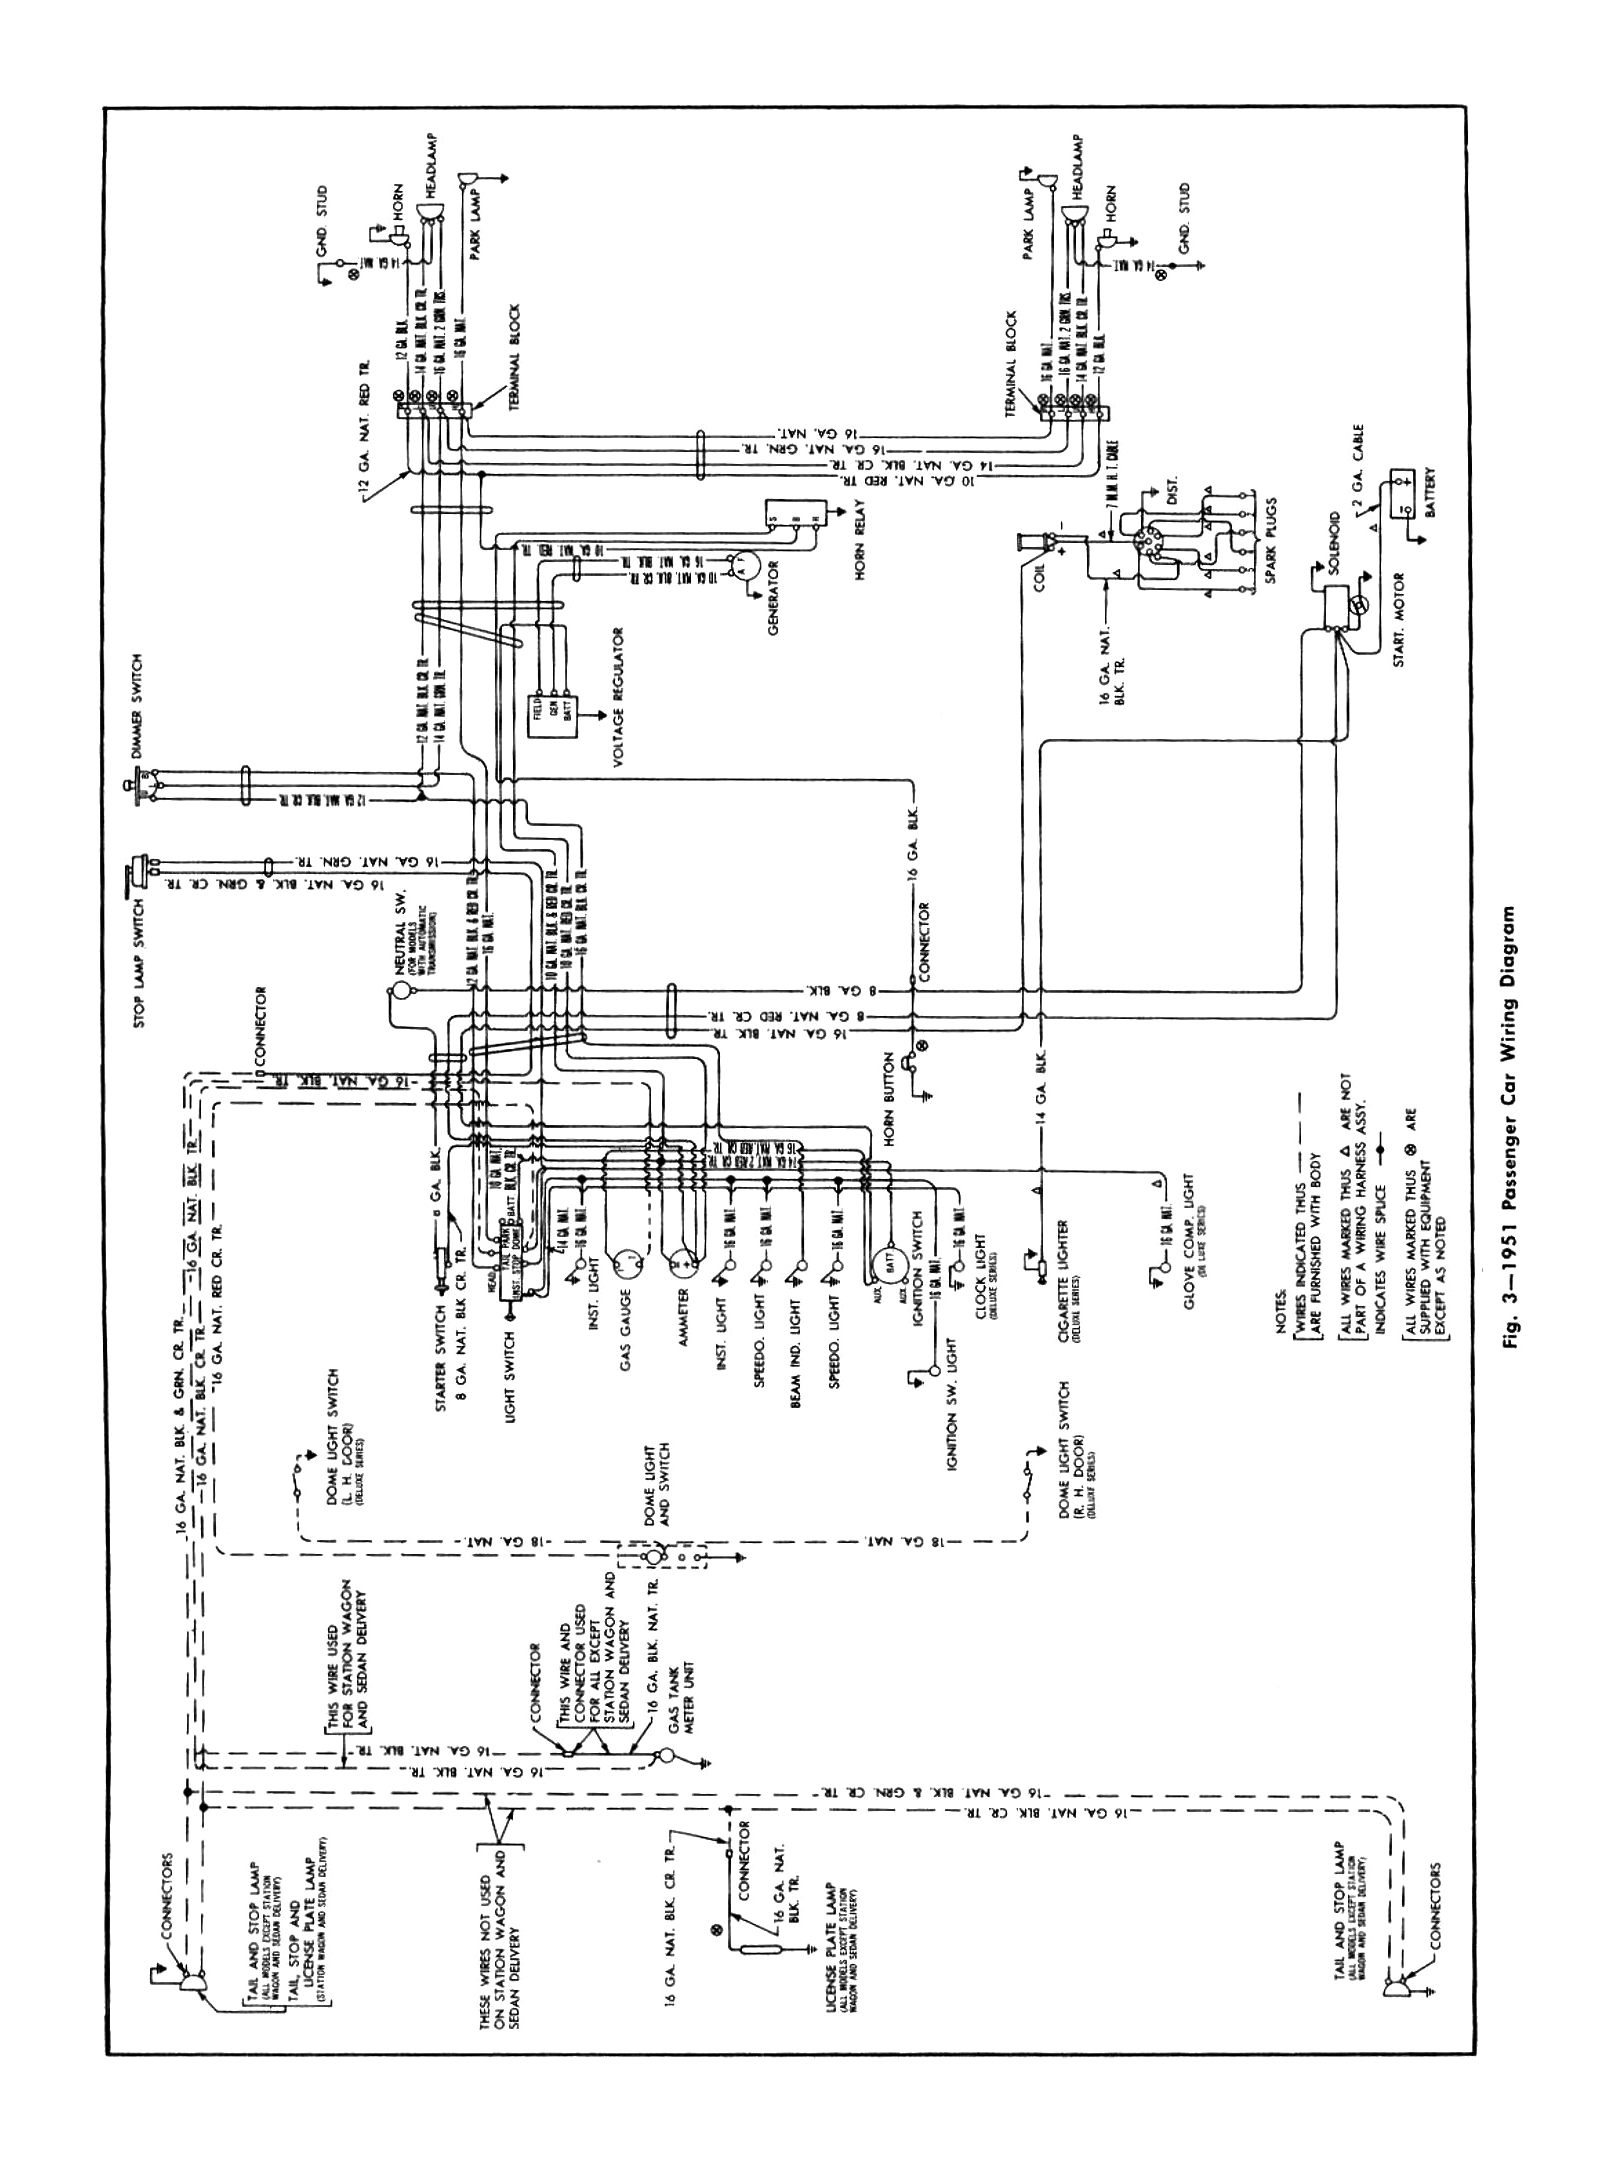 51car wiring loom diagram 1 2wire loom \u2022 wiring diagrams j squared co ez wiring schematic at fashall.co